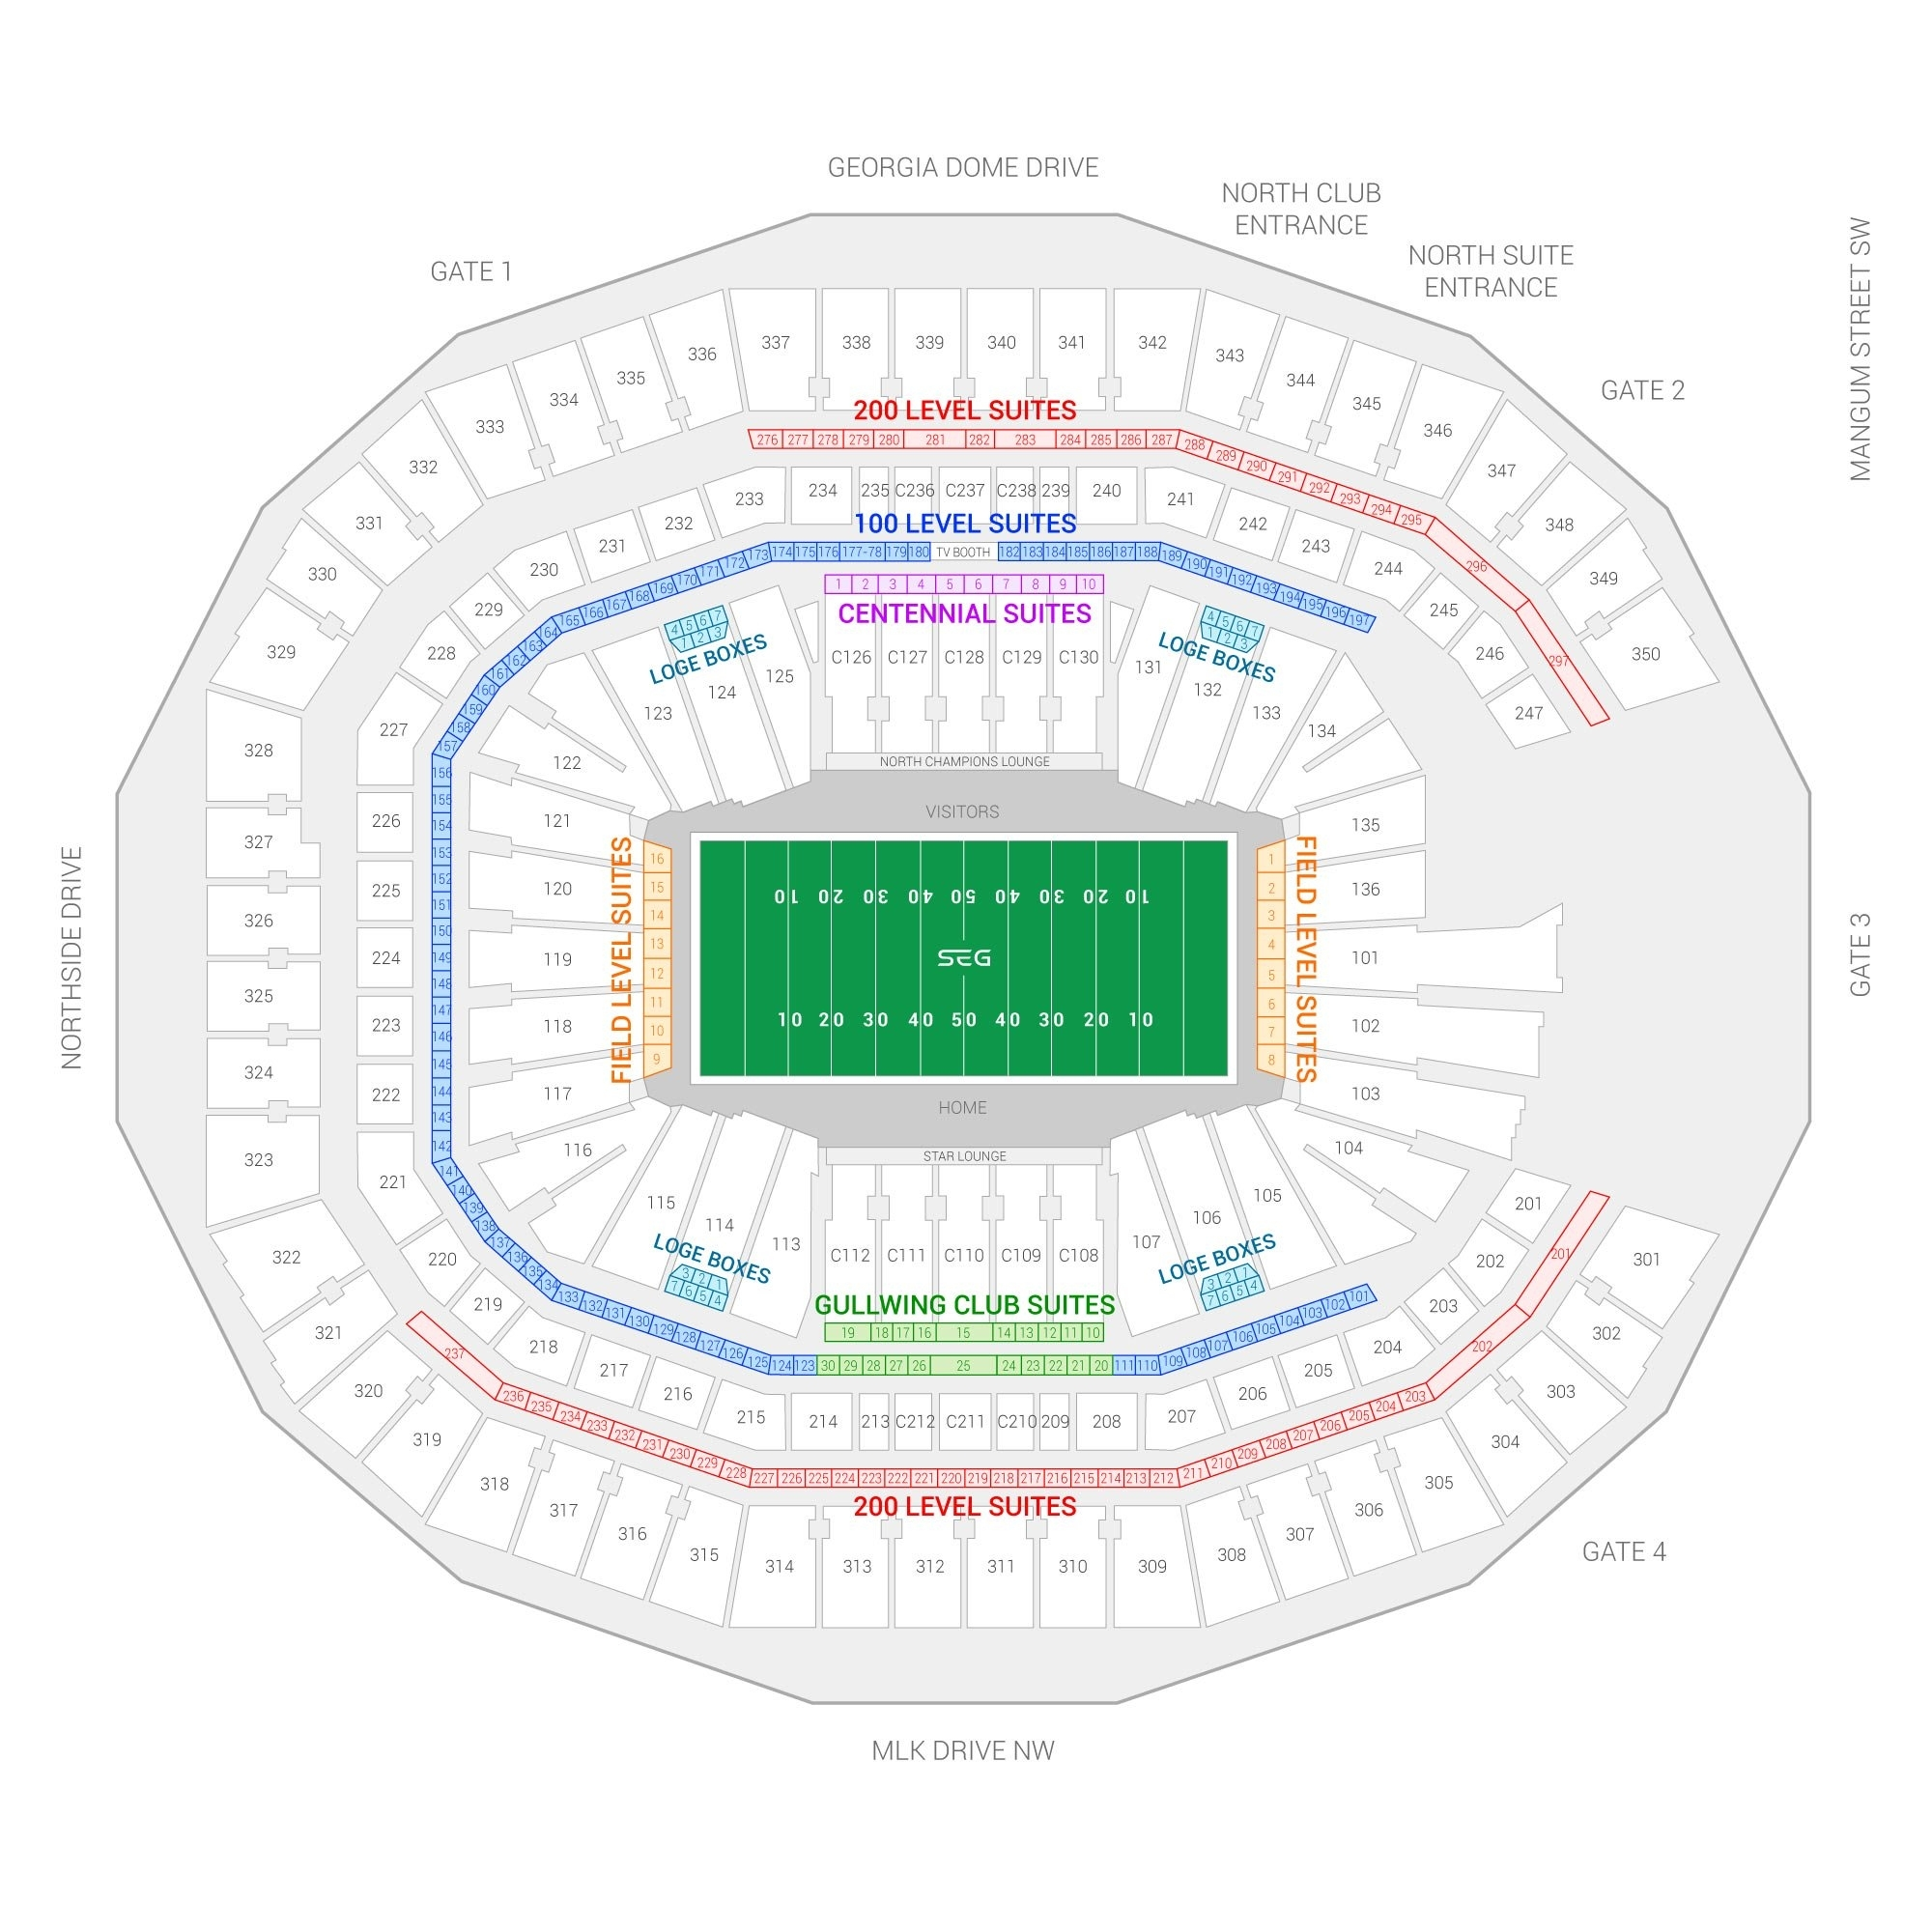 Super Bowl Liii Suite Rentals | Mercedes-Benz Stadium within Atlanta Stadium Super Bowl Seating Chart